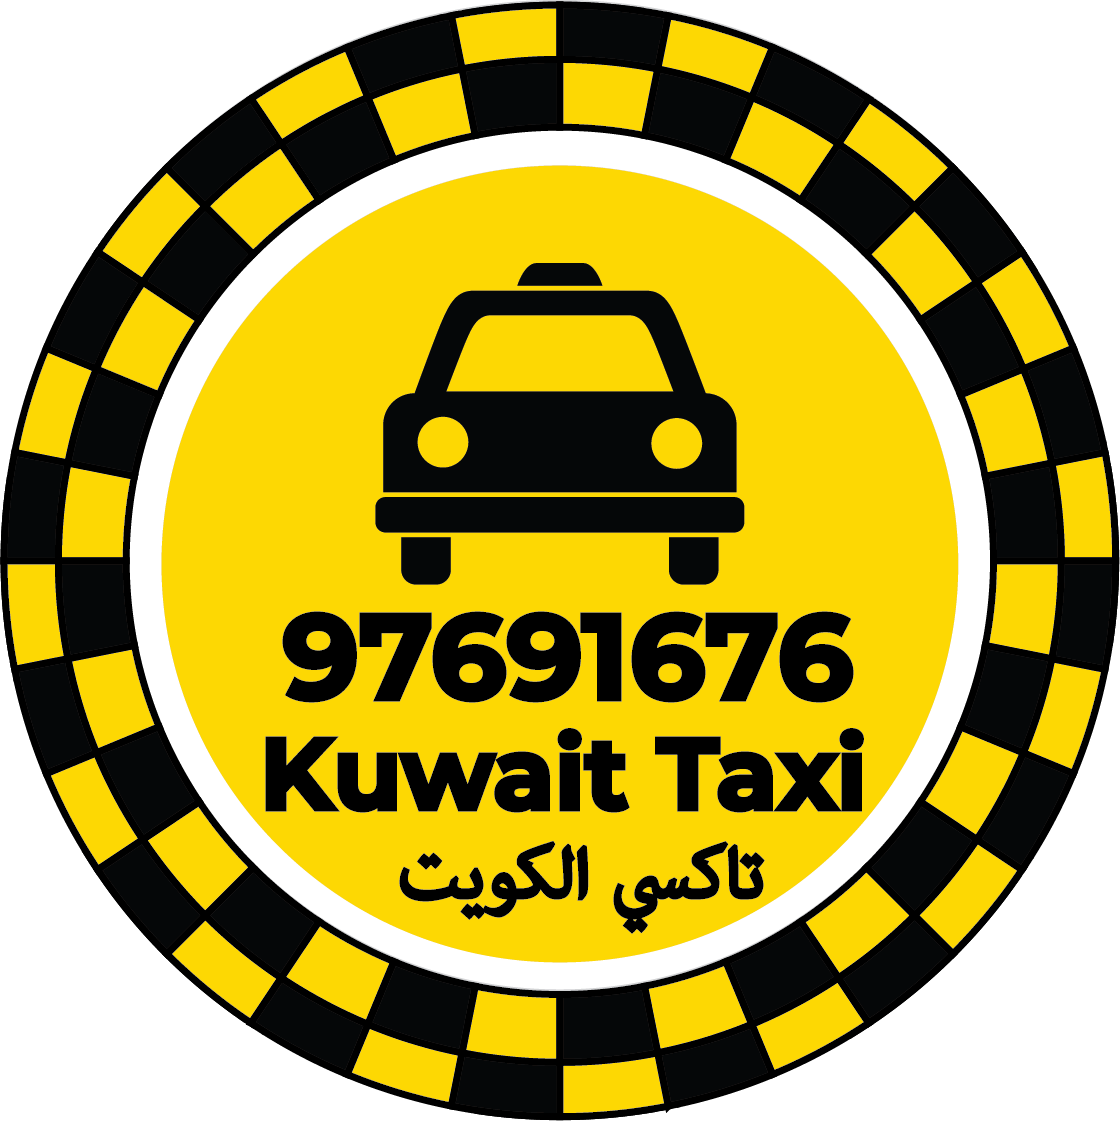 Airport Drop in Kuwait - Call Taxi Airport